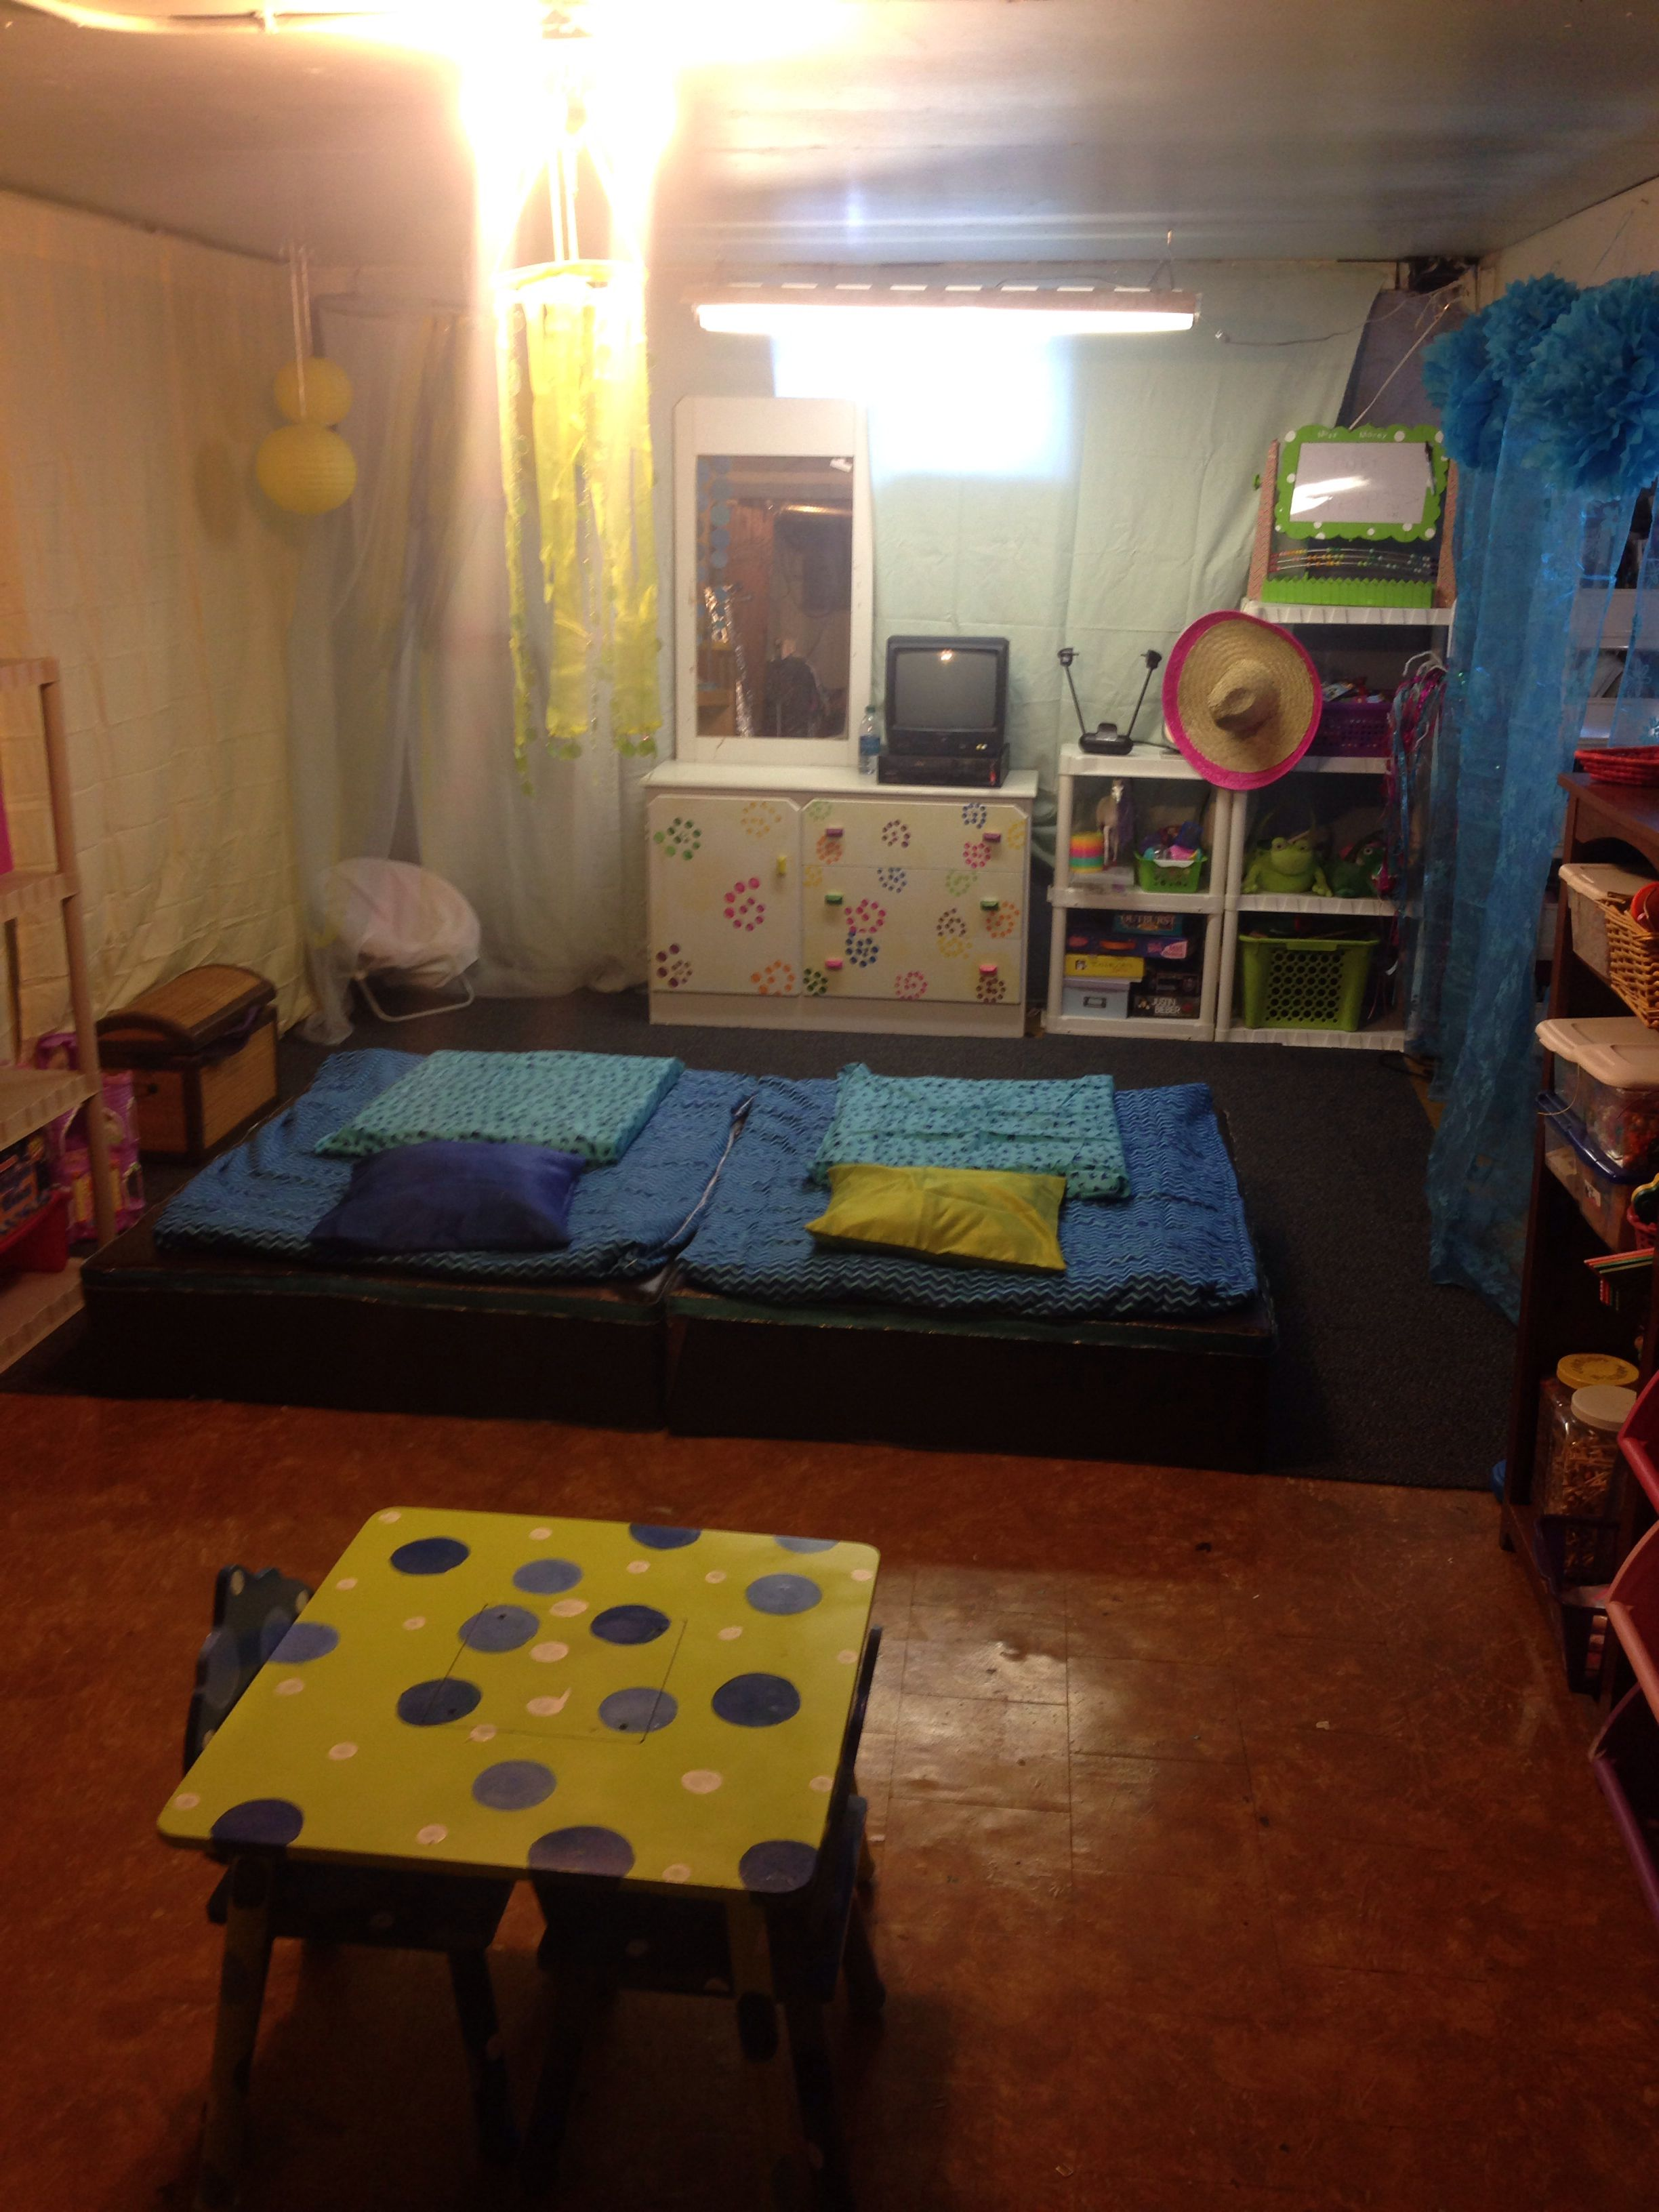 Unfinished basement turned playroom on a budget   Things i've done   Pinterest   Basements. Playrooms and Budgeting